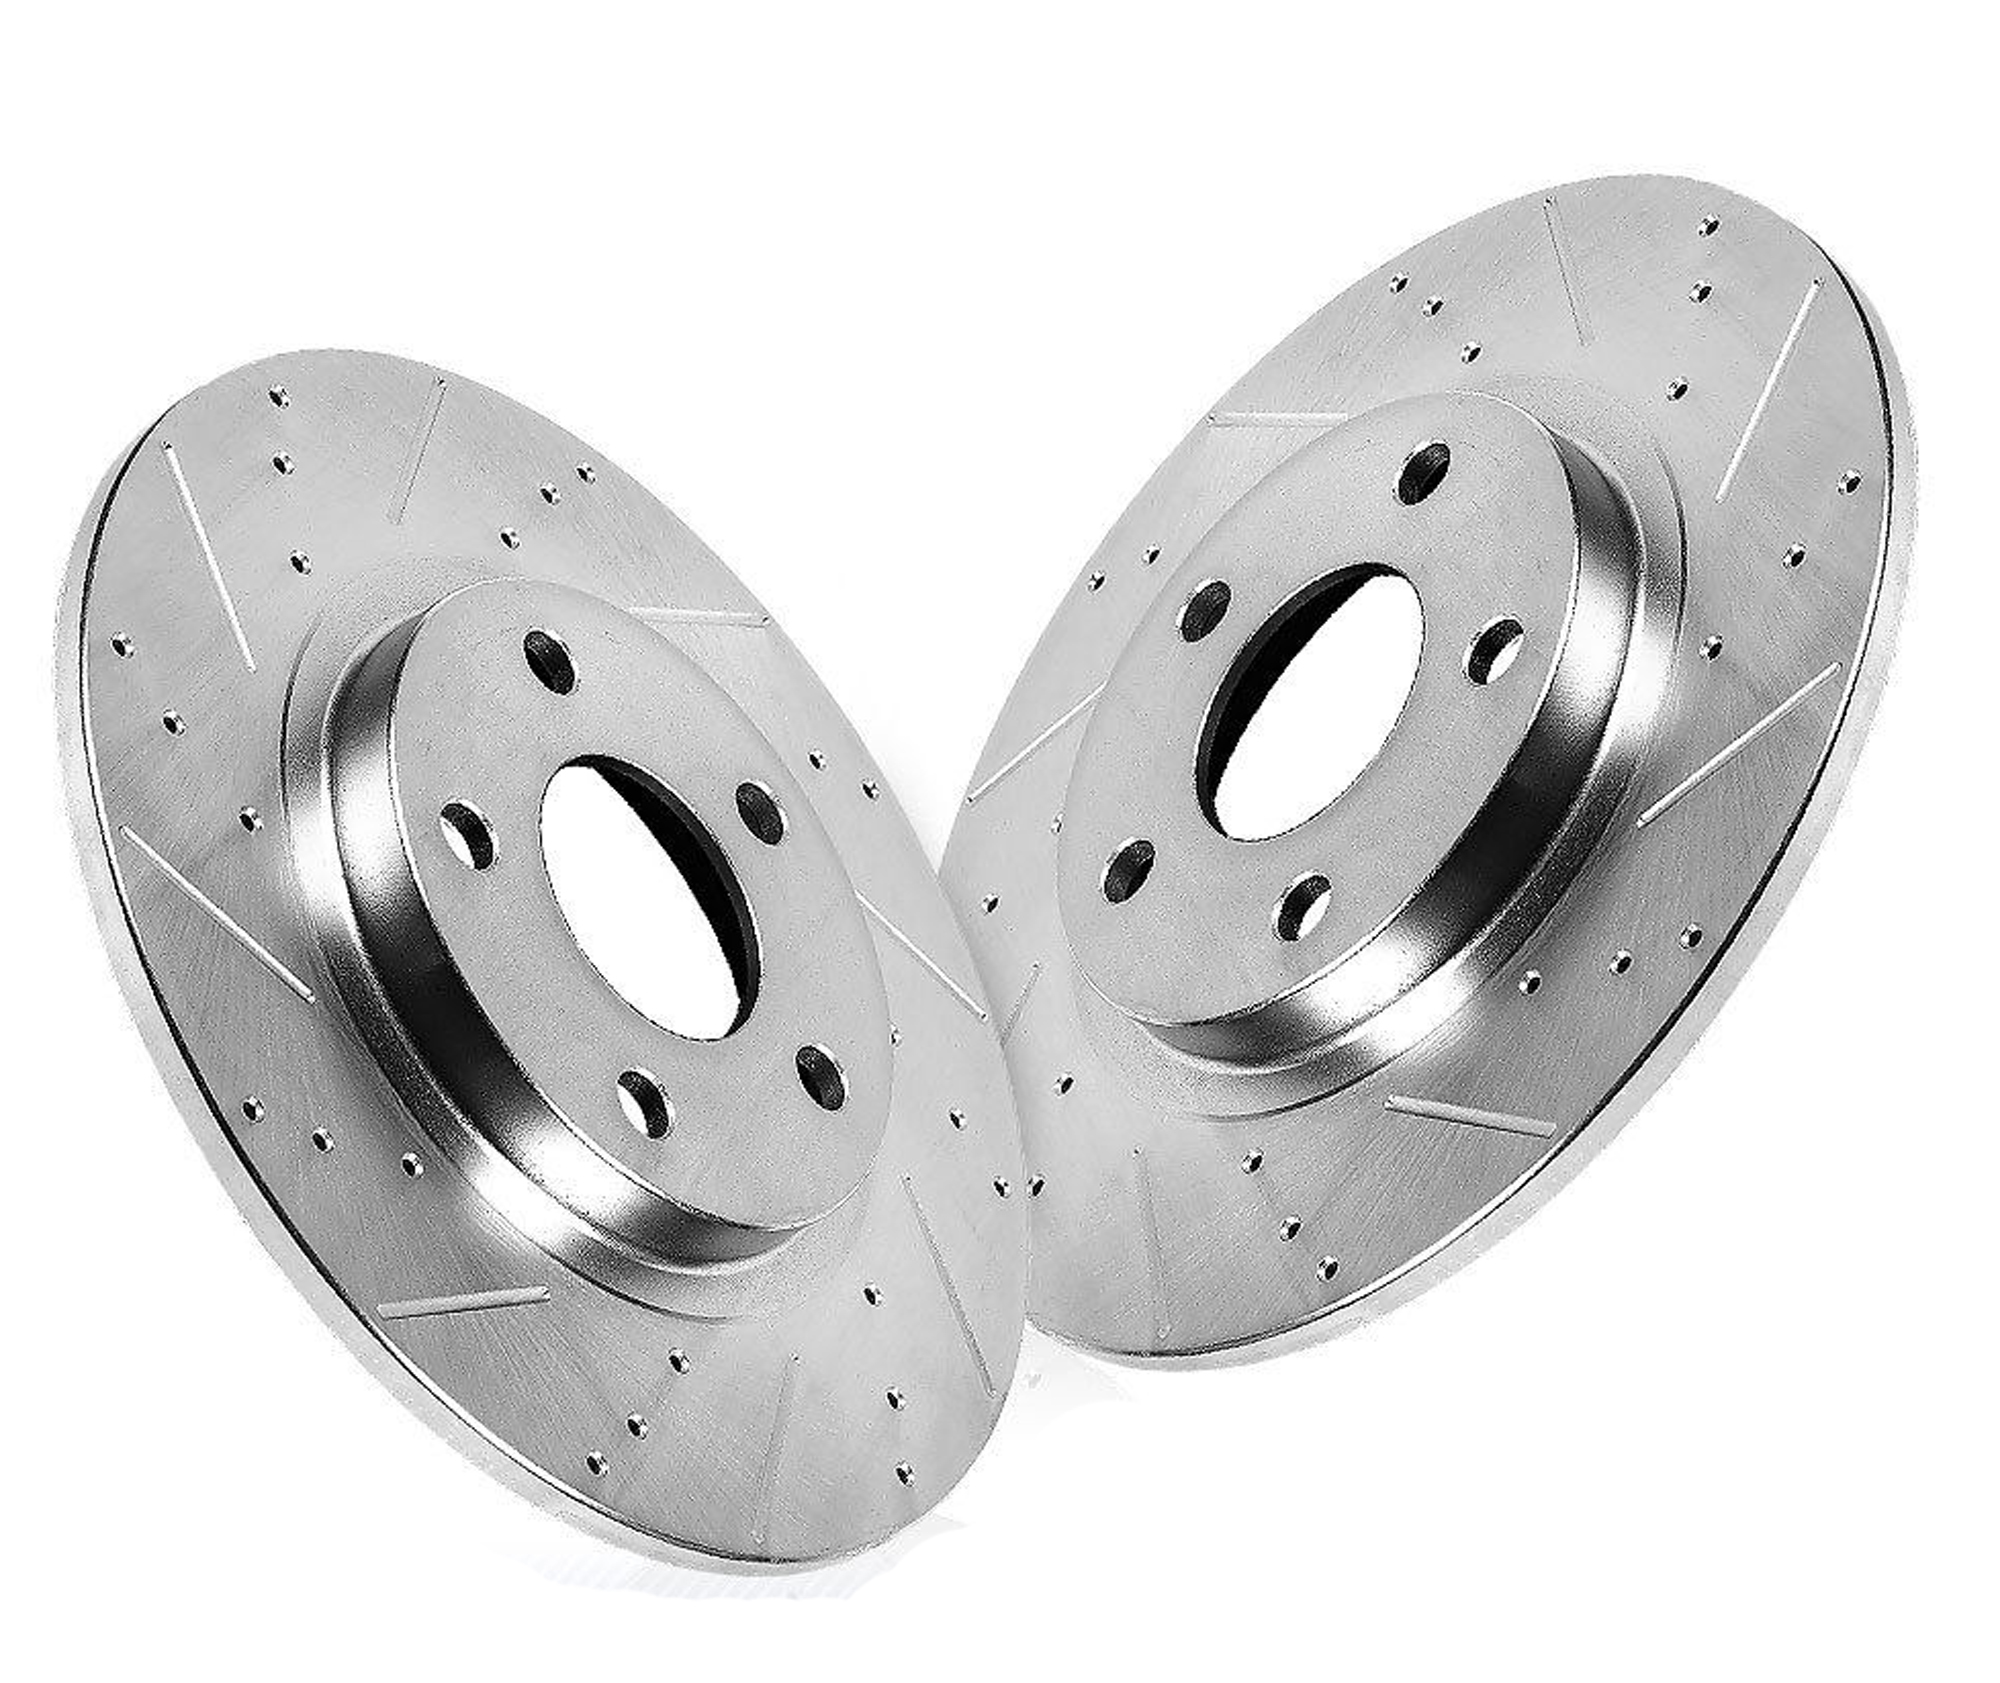 Pair (2) Rear Drilled and Slotted Disc Brake Rotors for Audi A4 A5 -  Detroit Axle